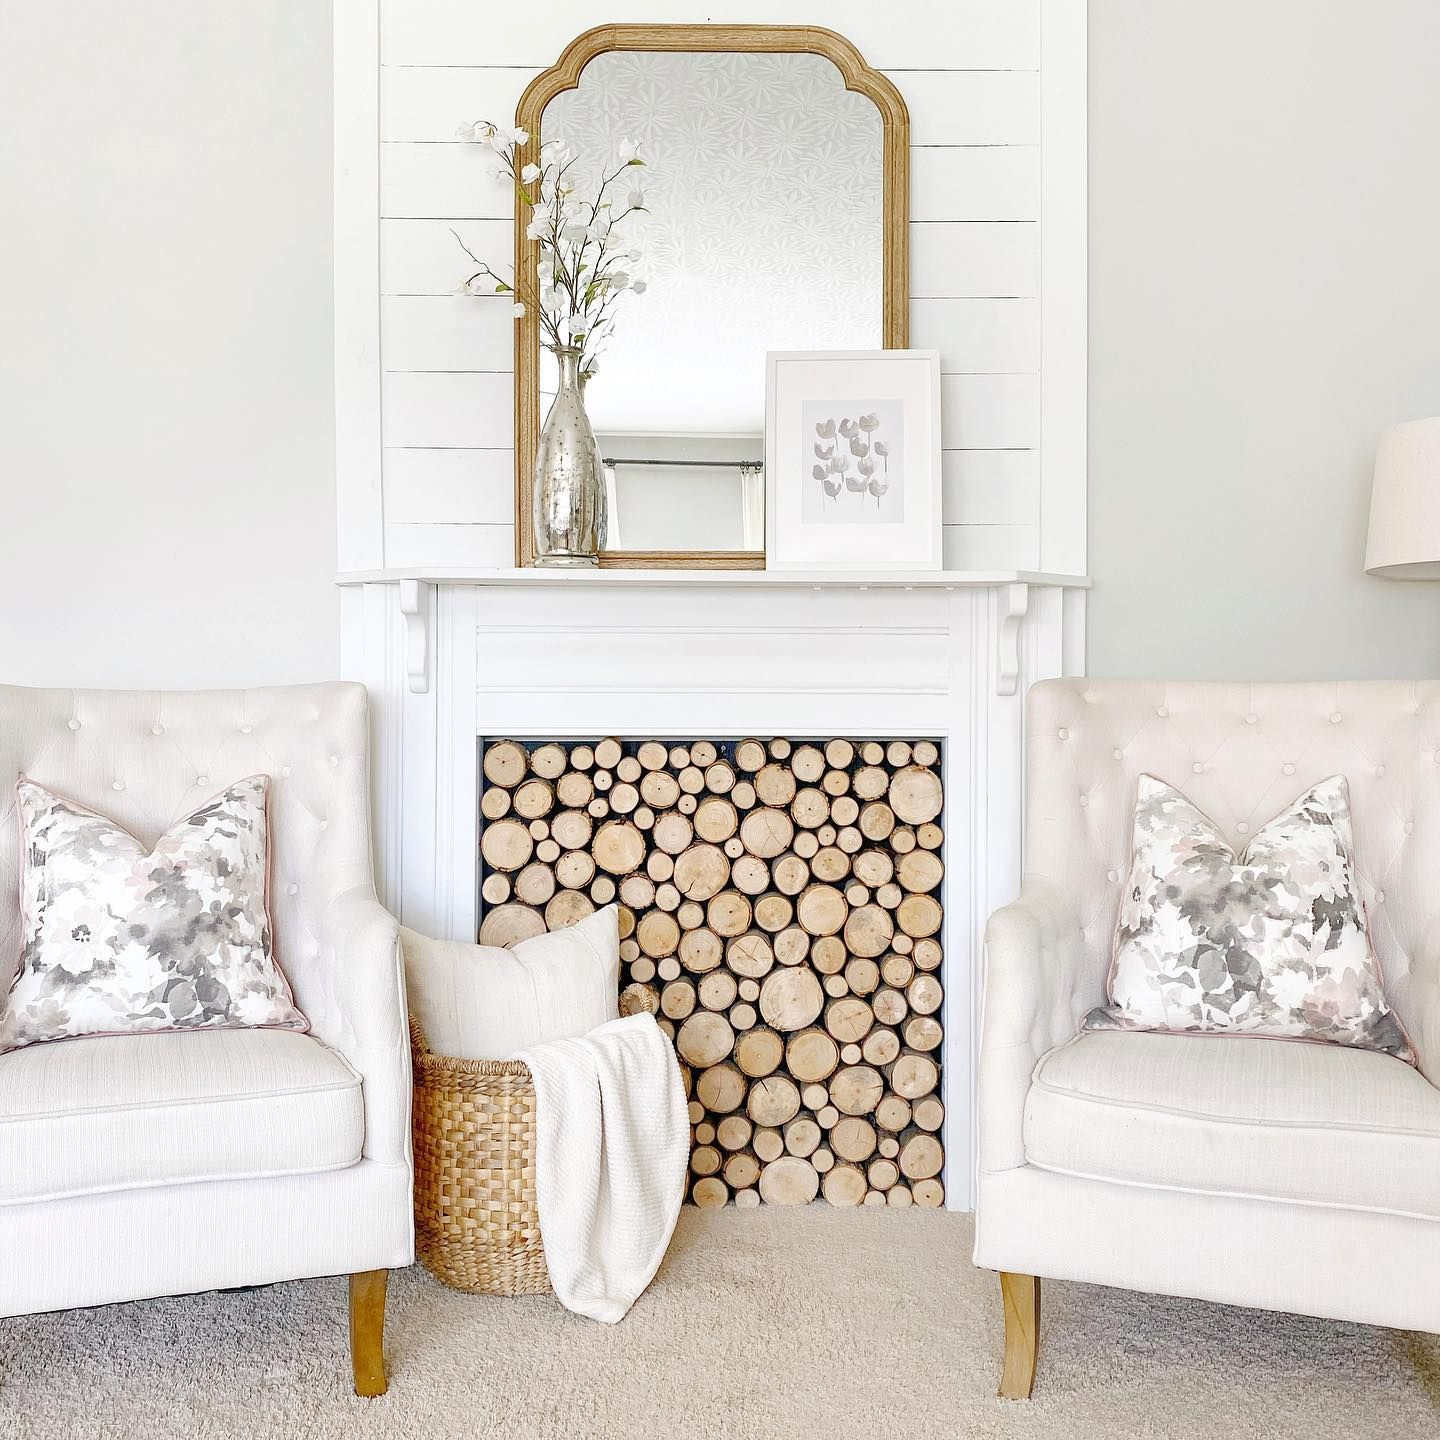 """I've been trying to make a really bold print """"work"""" on the fireplace for more than a week, and it's still not happening. 🤷🏼♀️ So, here's a neutral look more in my comfort zone... 😬🙈 #mytradhome #springdecor #springhomedecor #fauxfireplace #currentdesignsituation #myhomevibe #neutraldecor #neutralhome"""